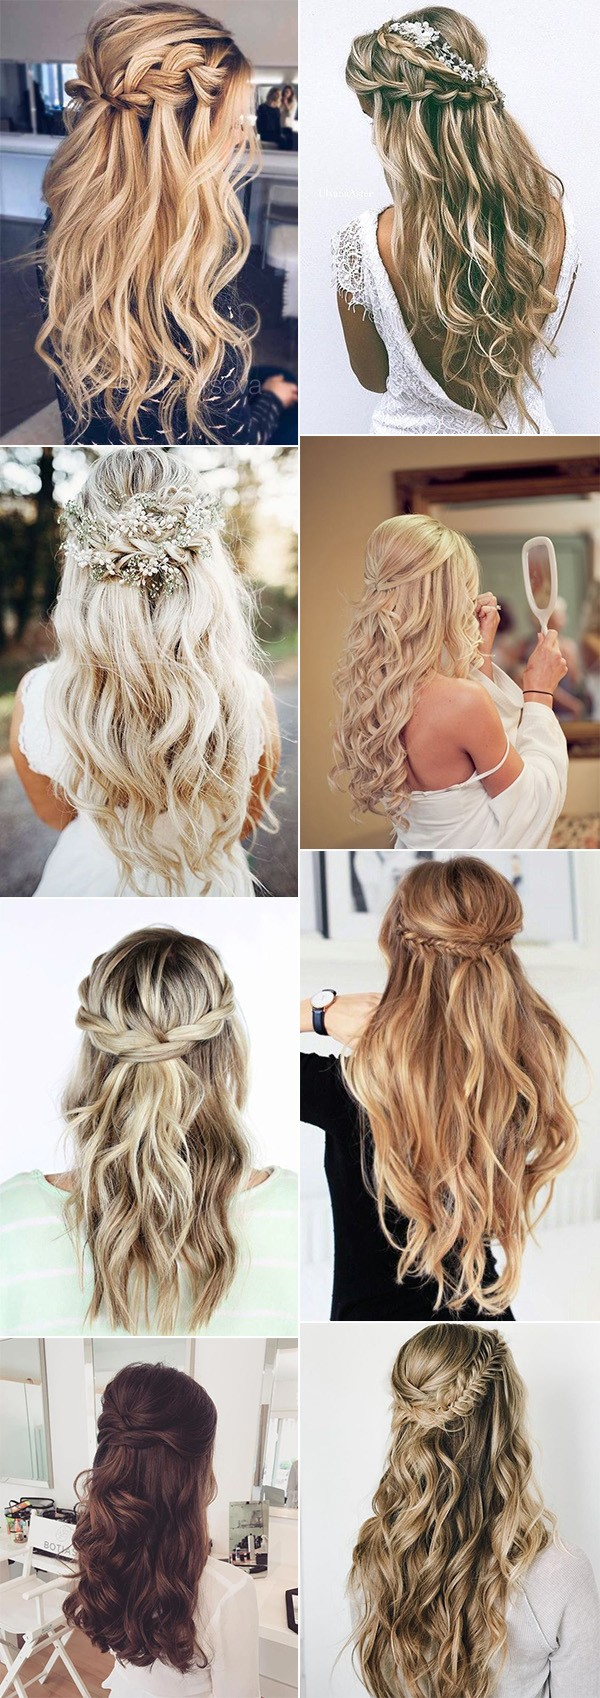 trending elegant half up half down wedding hairstyles